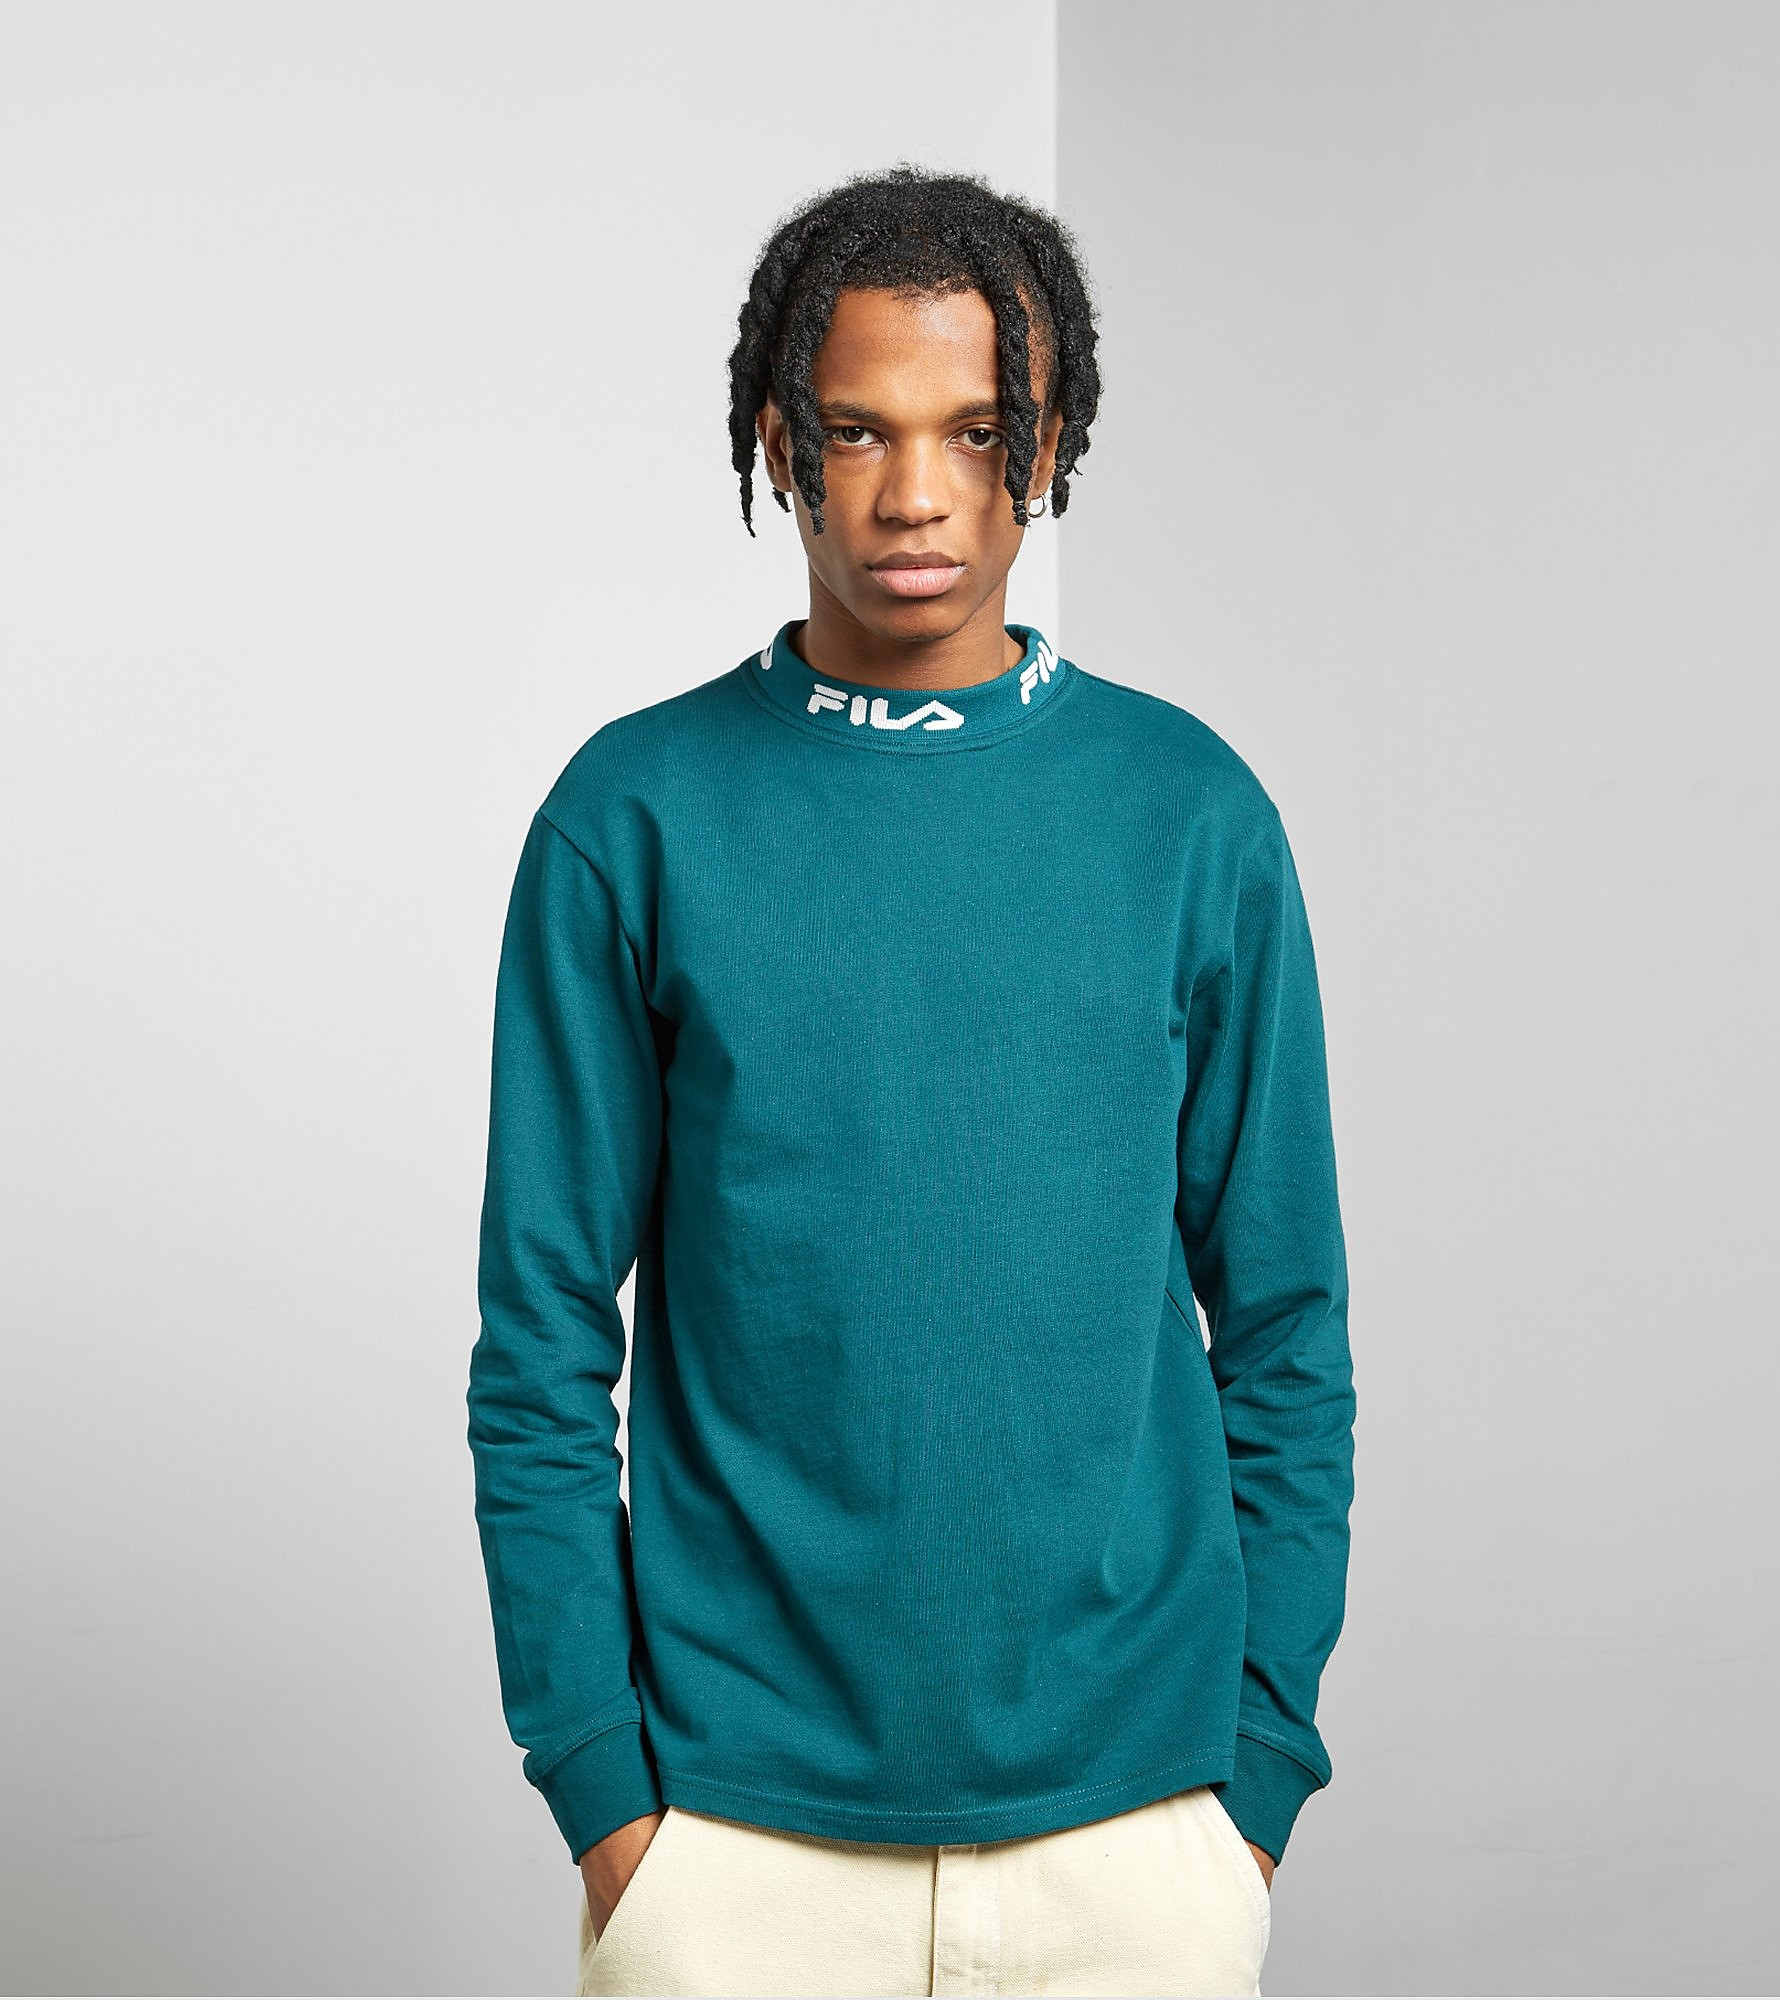 Fila Gigante Long Sleeved T-Shirt - size? Exclusive